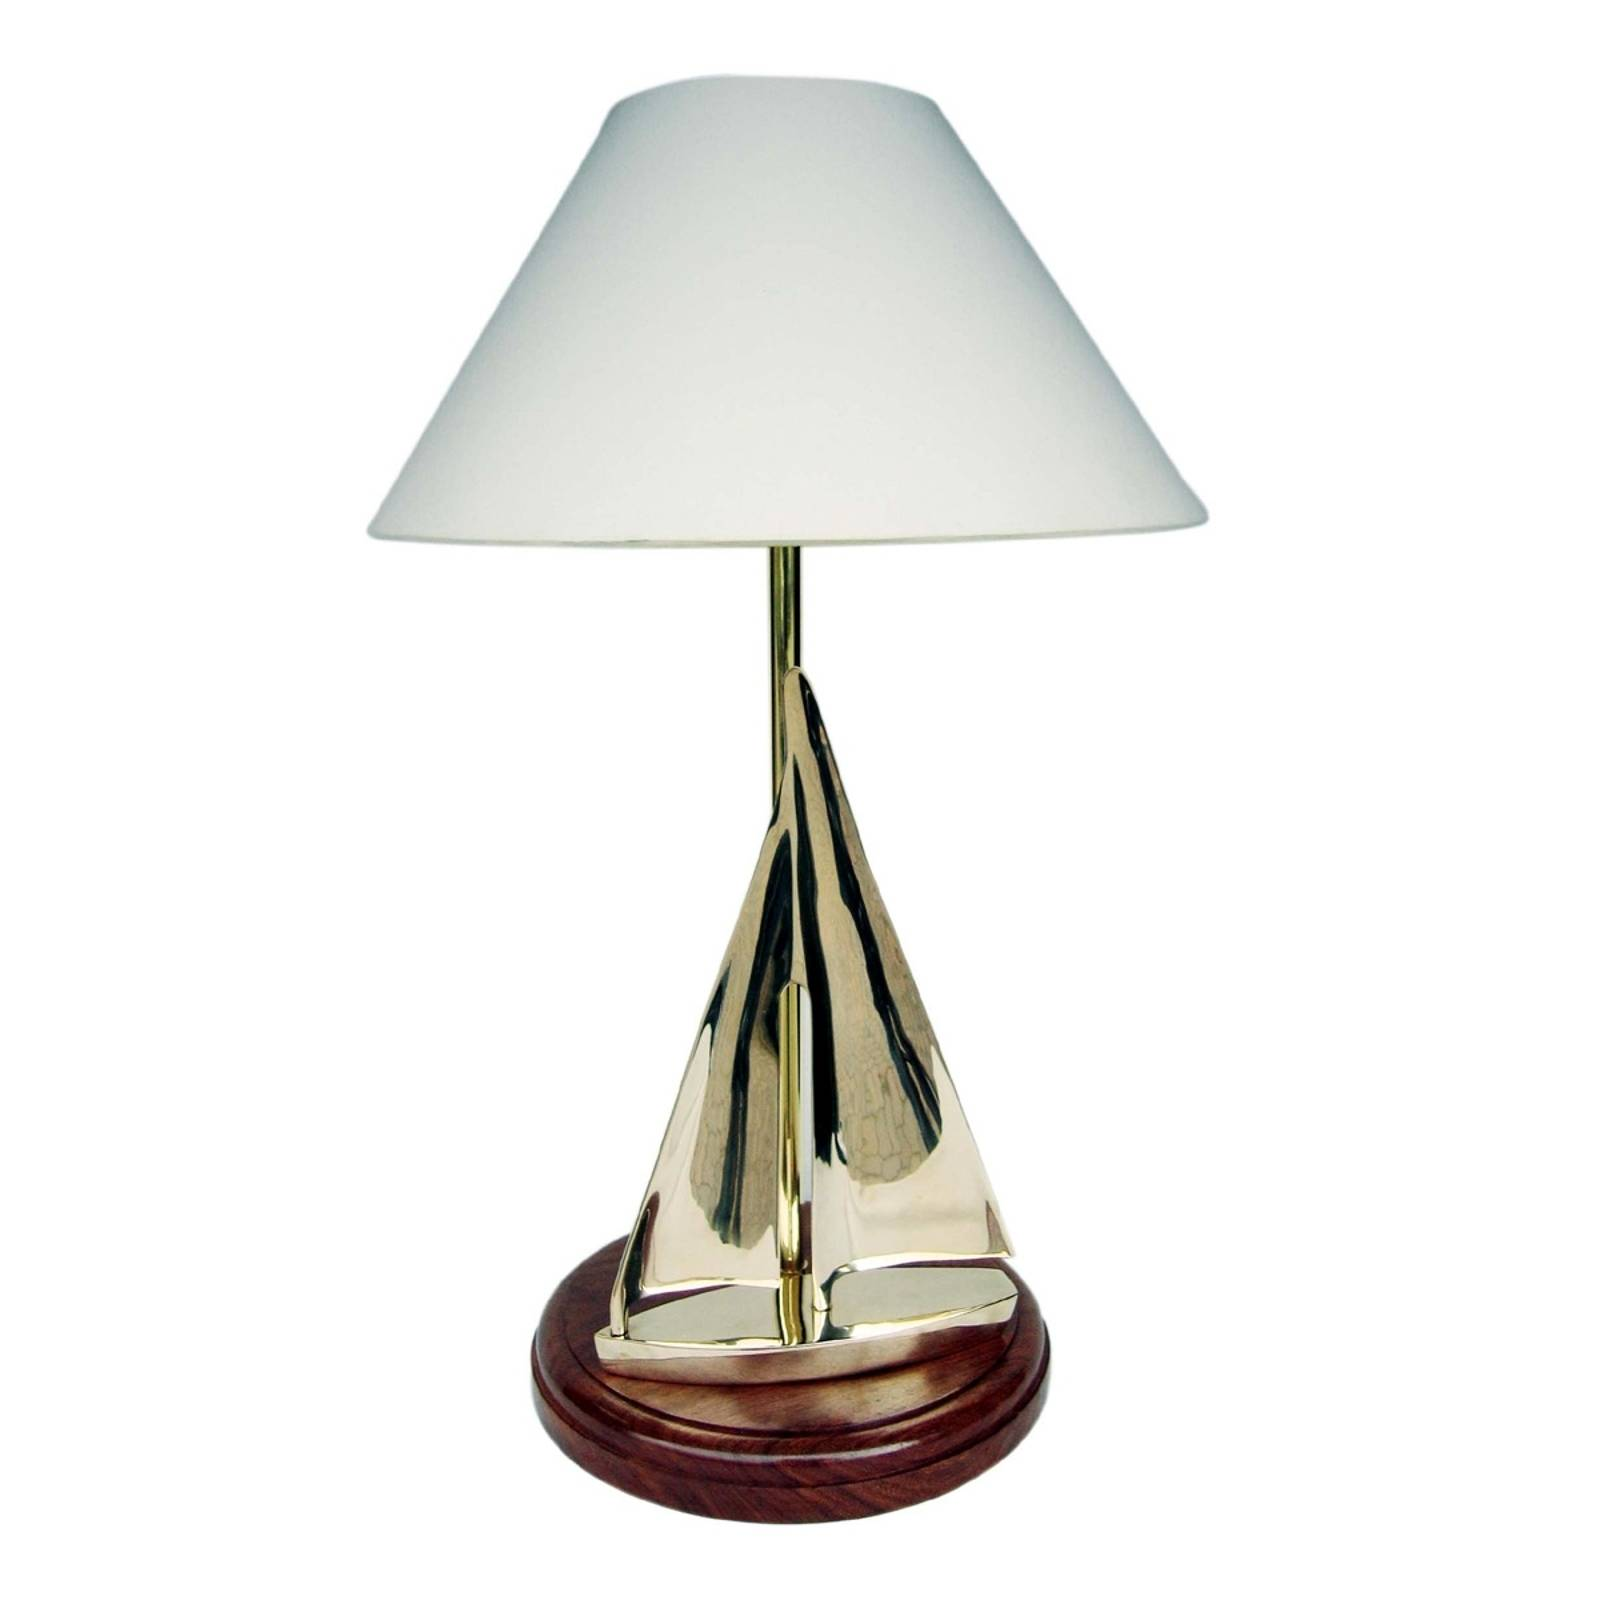 Fancy table lamp SAILING 60 cm high from SEA-Club